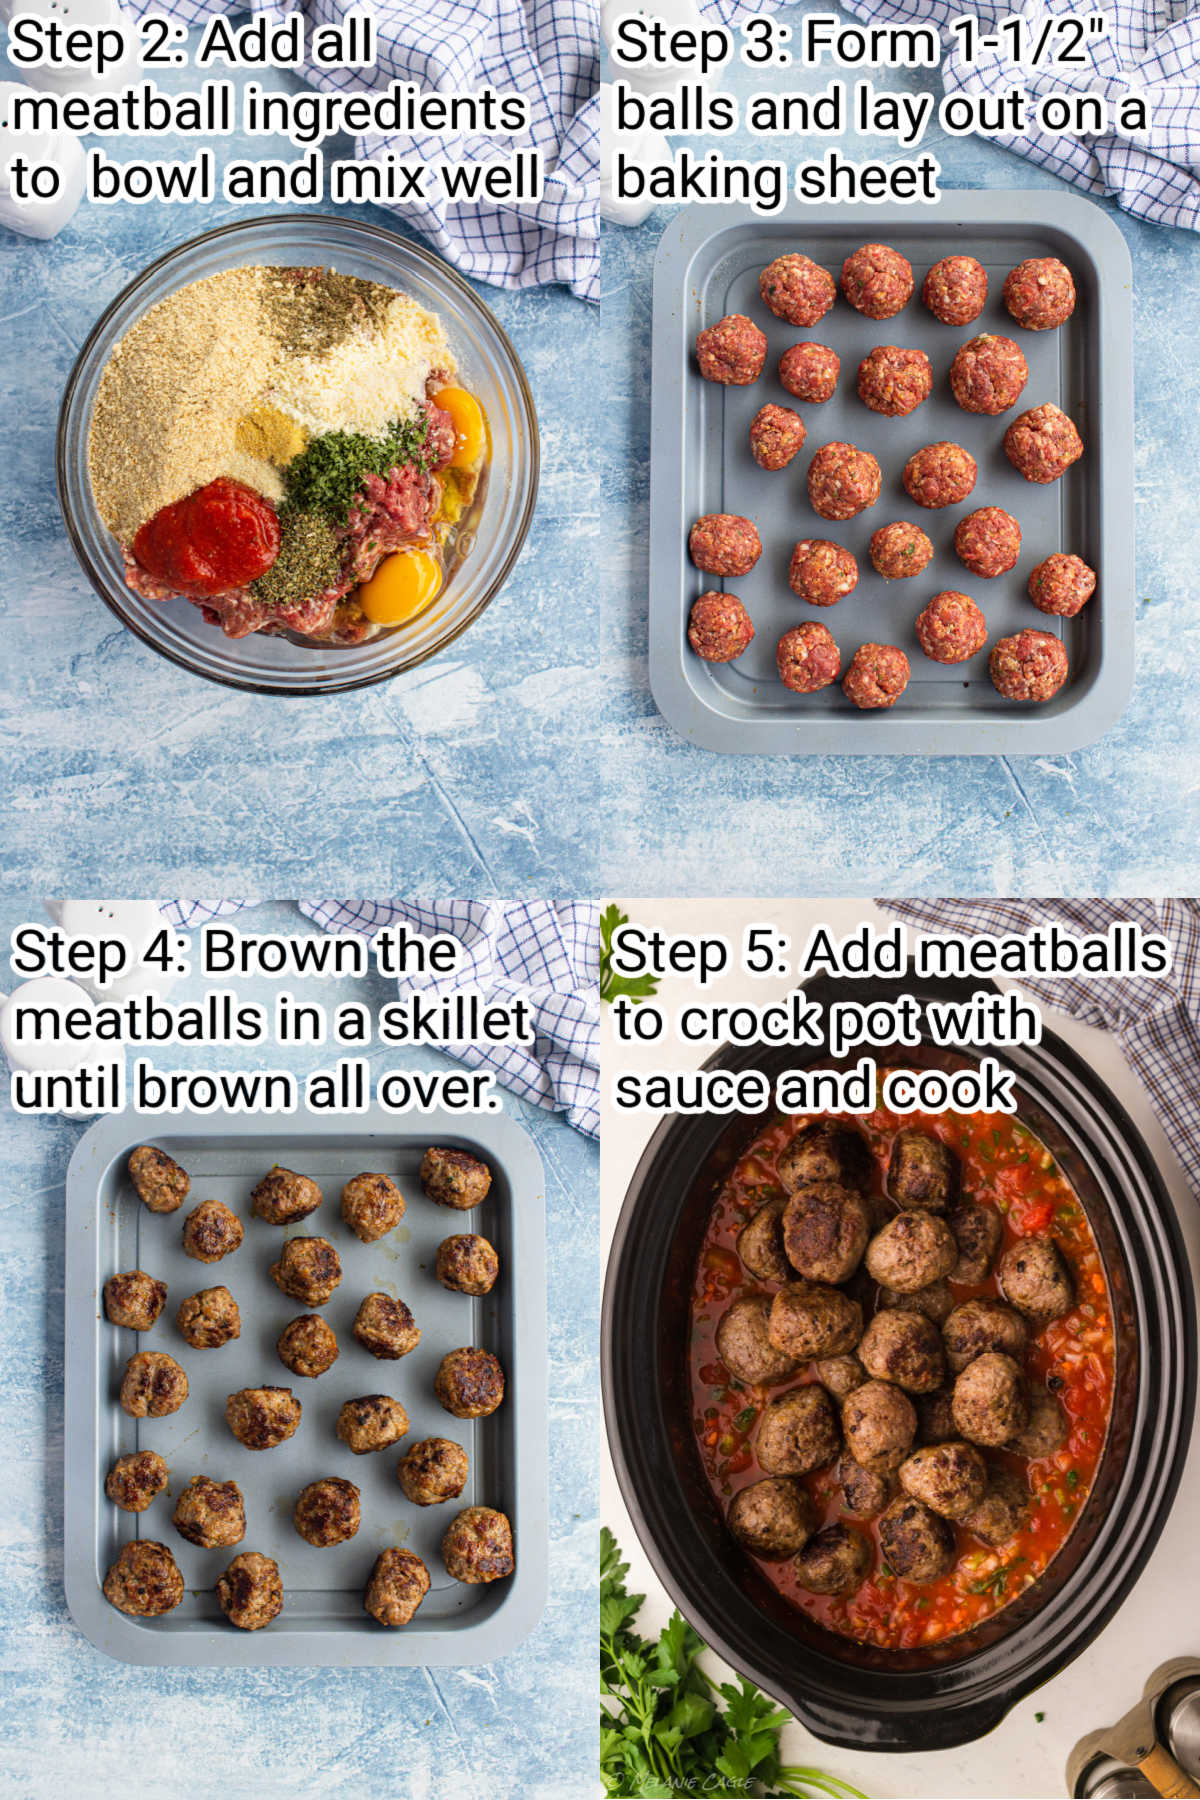 four images showing steps of how to make crock pot spaghetti and meatballs